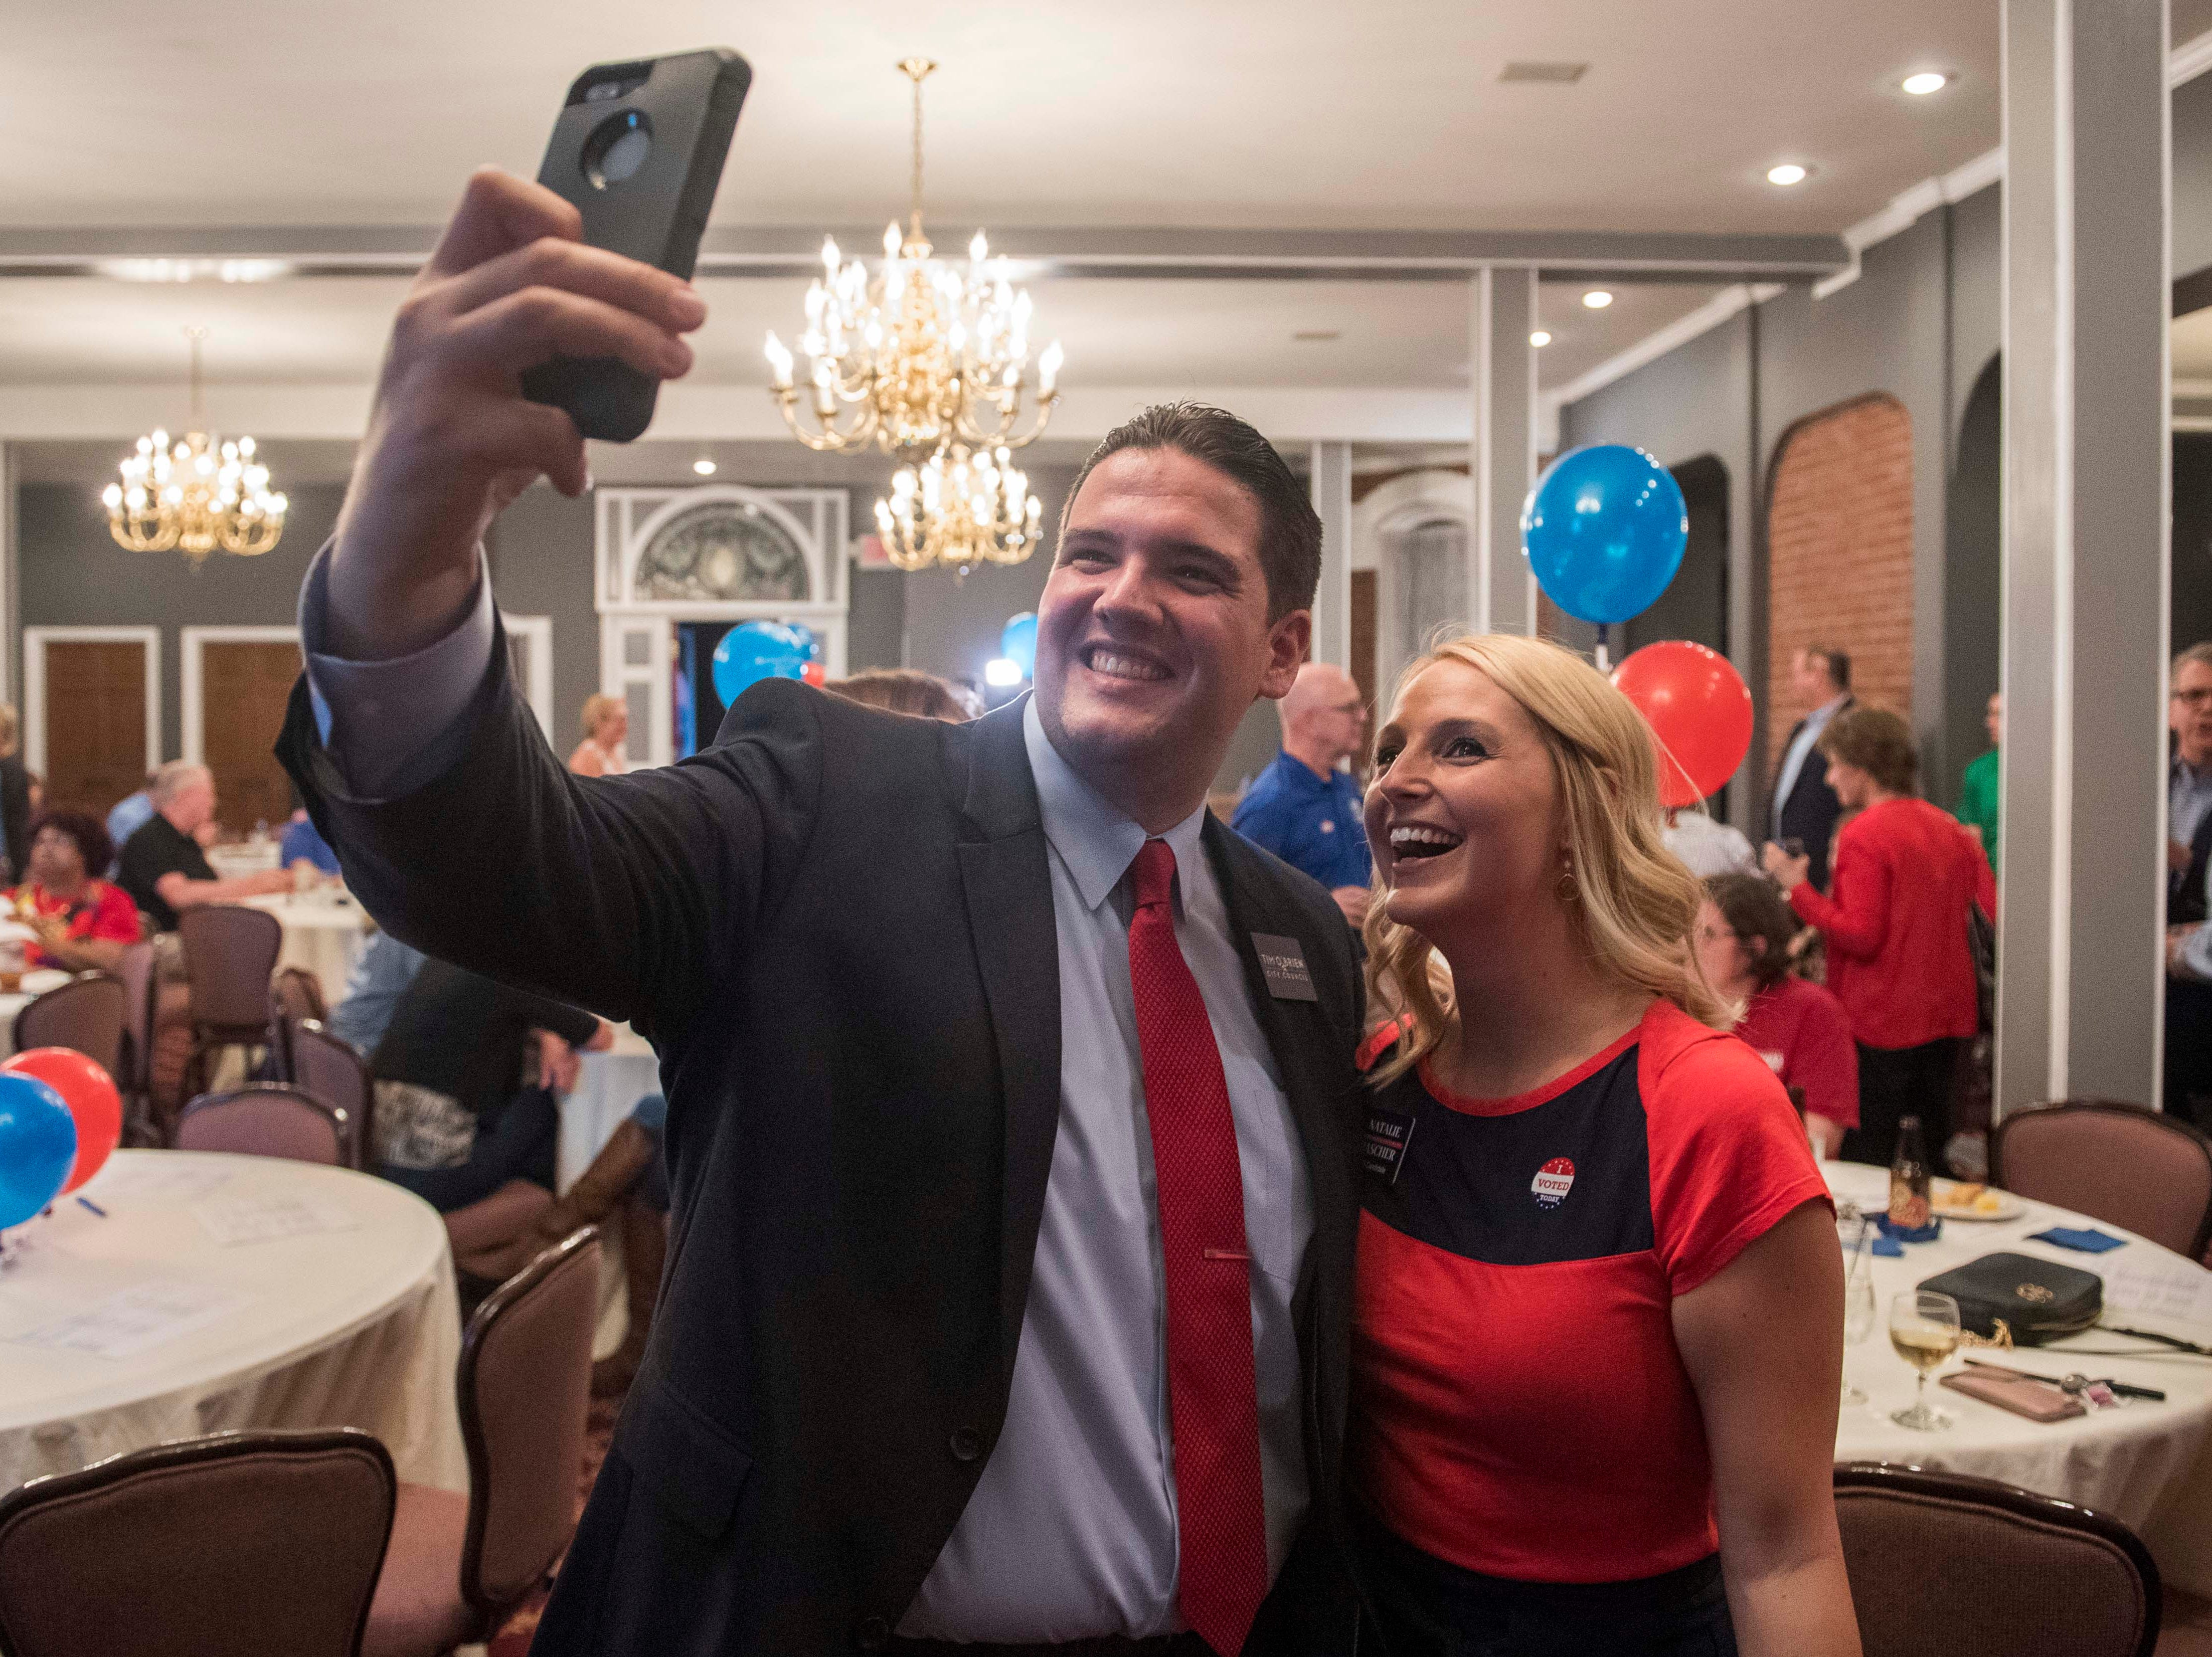 Republican candidates Tim O'Brien and Natalie Rascher take a photo together the Vanderburgh County Republican watch party Tuesday, May 7, 2019.